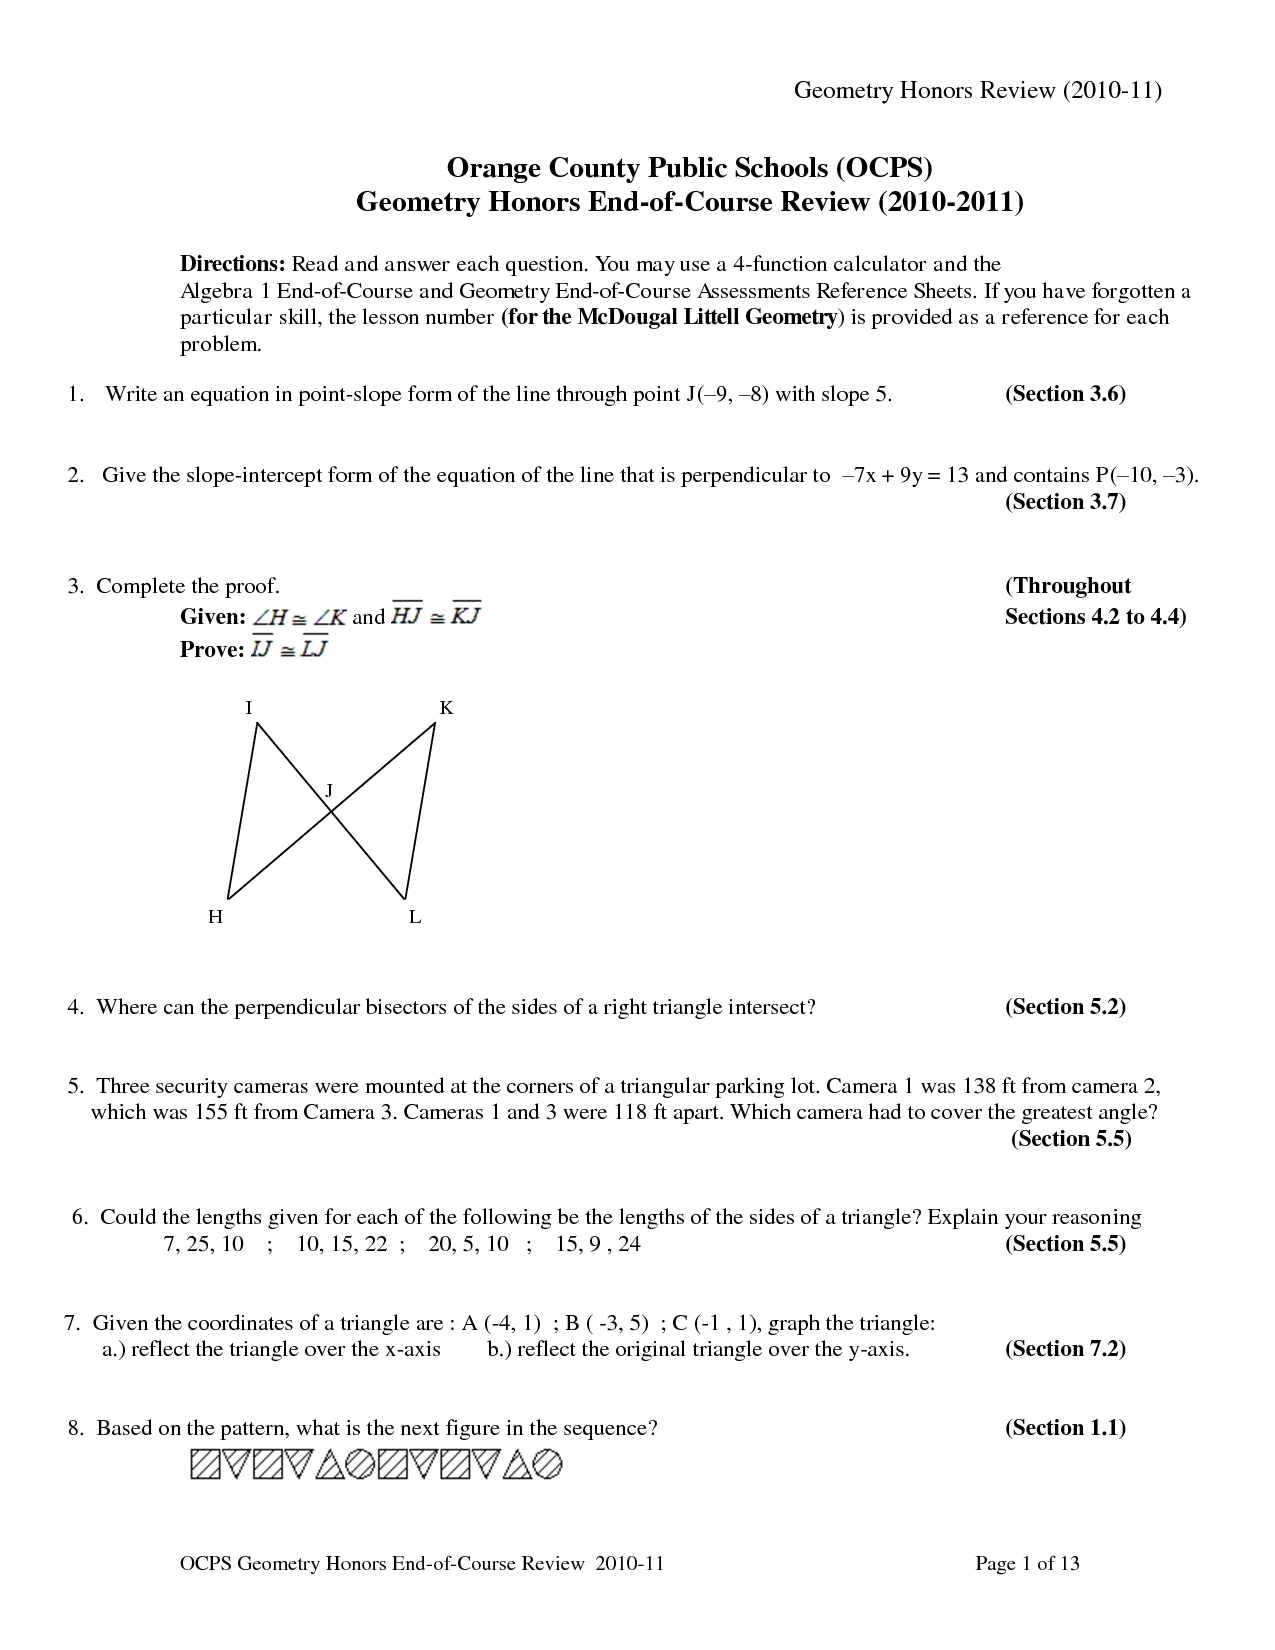 Holt Mcdougal Worksheet Answers